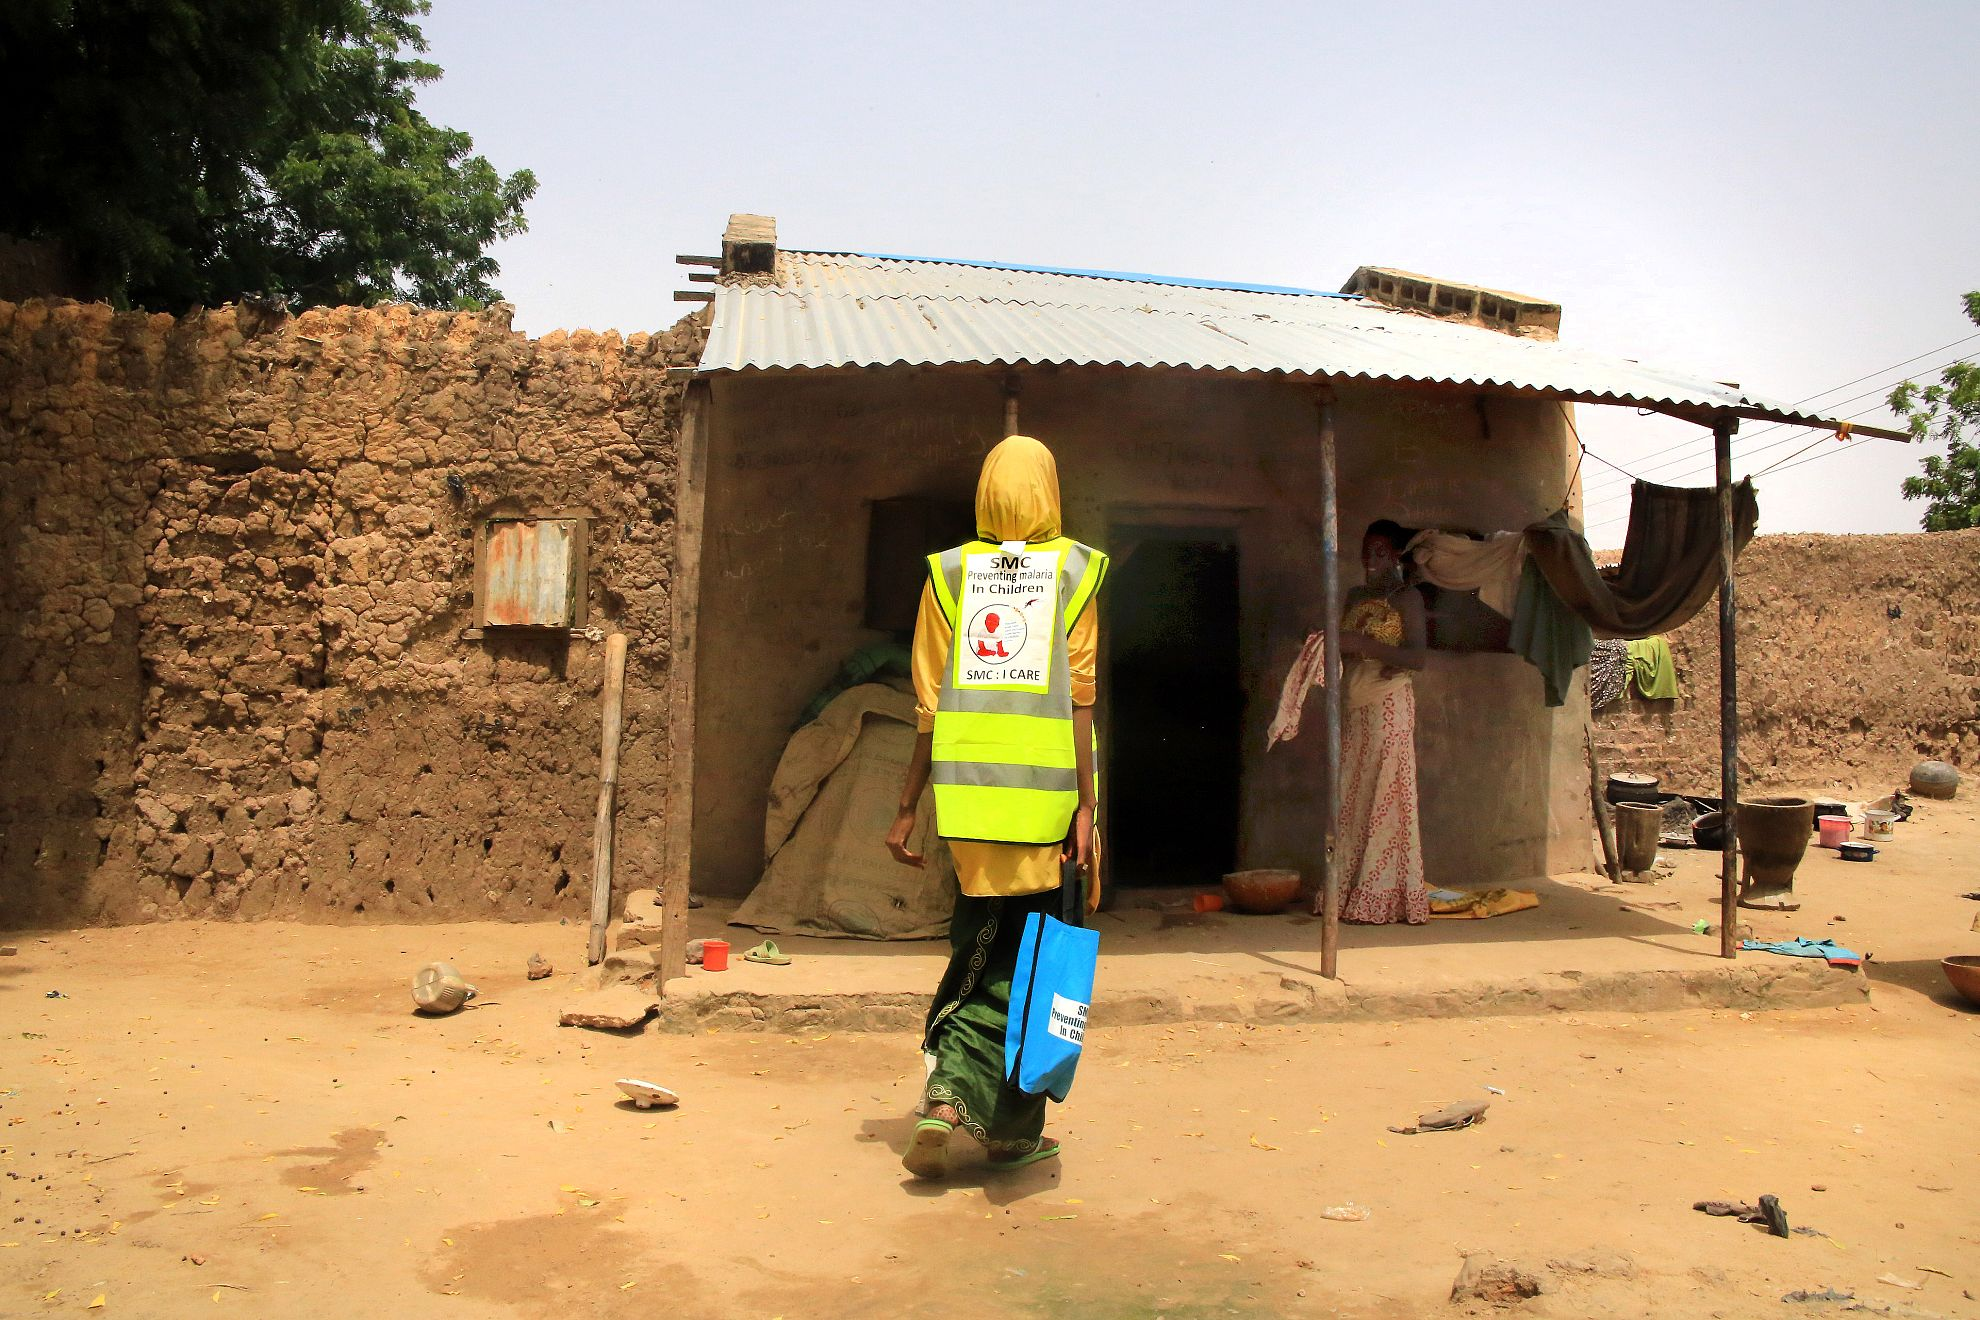 Latest News Community health workers access smcs malaria prevention agents